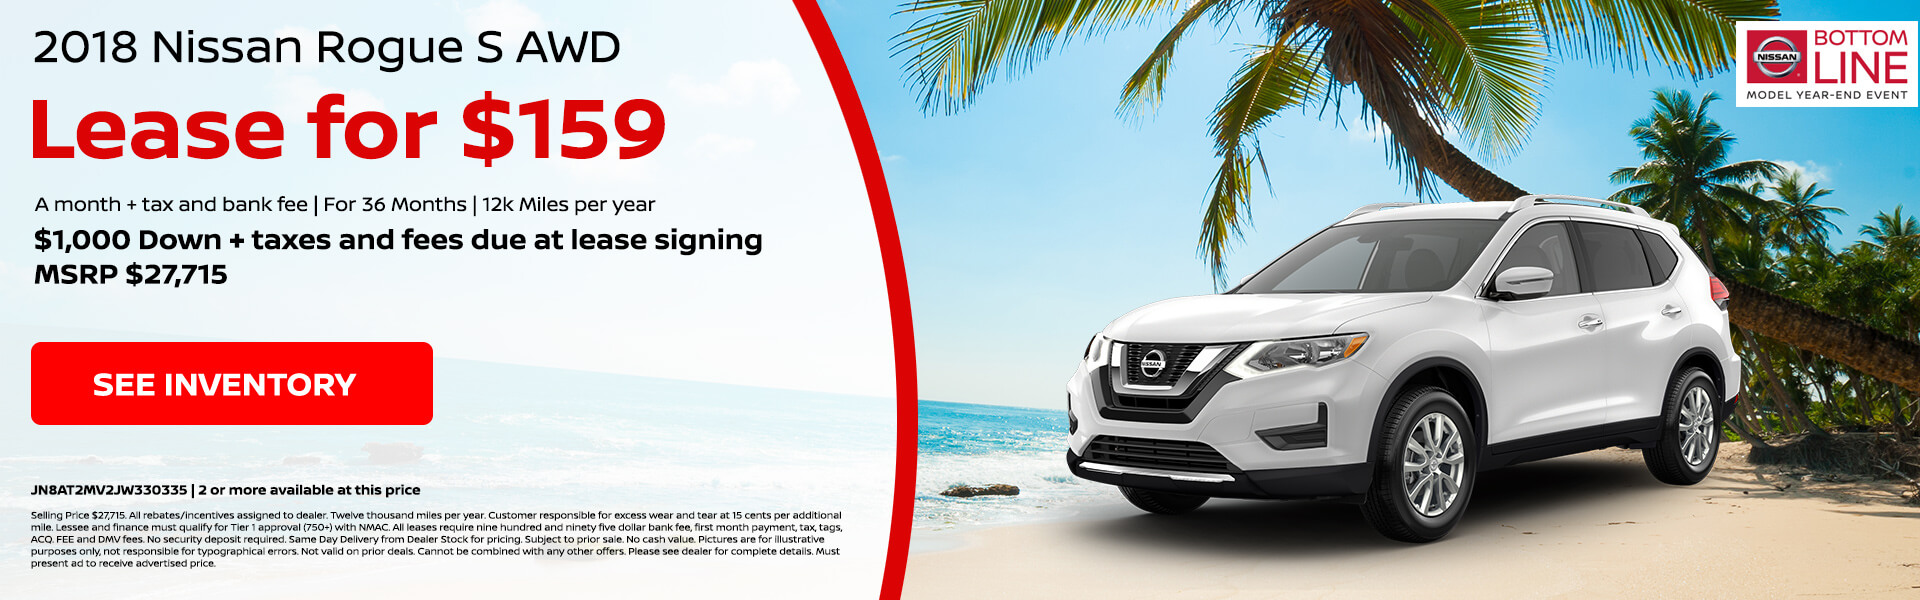 Nissan Rogue S $159 Lease